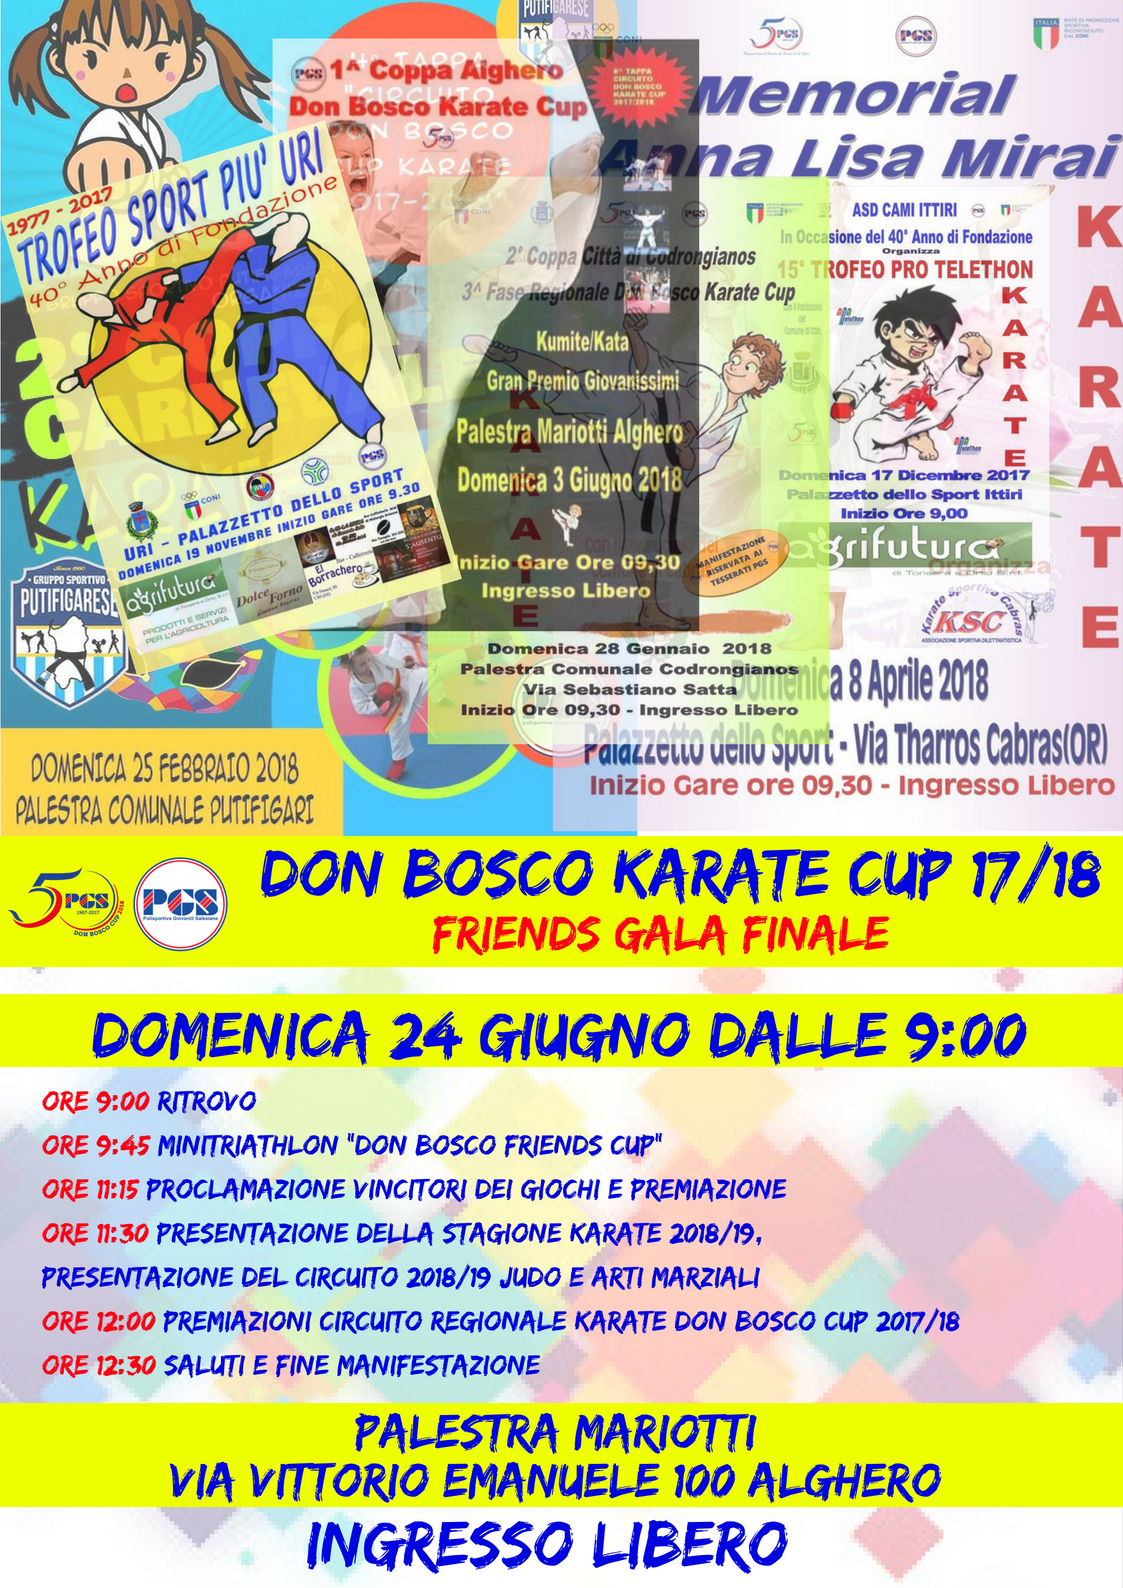 Gala Master Final Don Bosco Karate Cup 2018